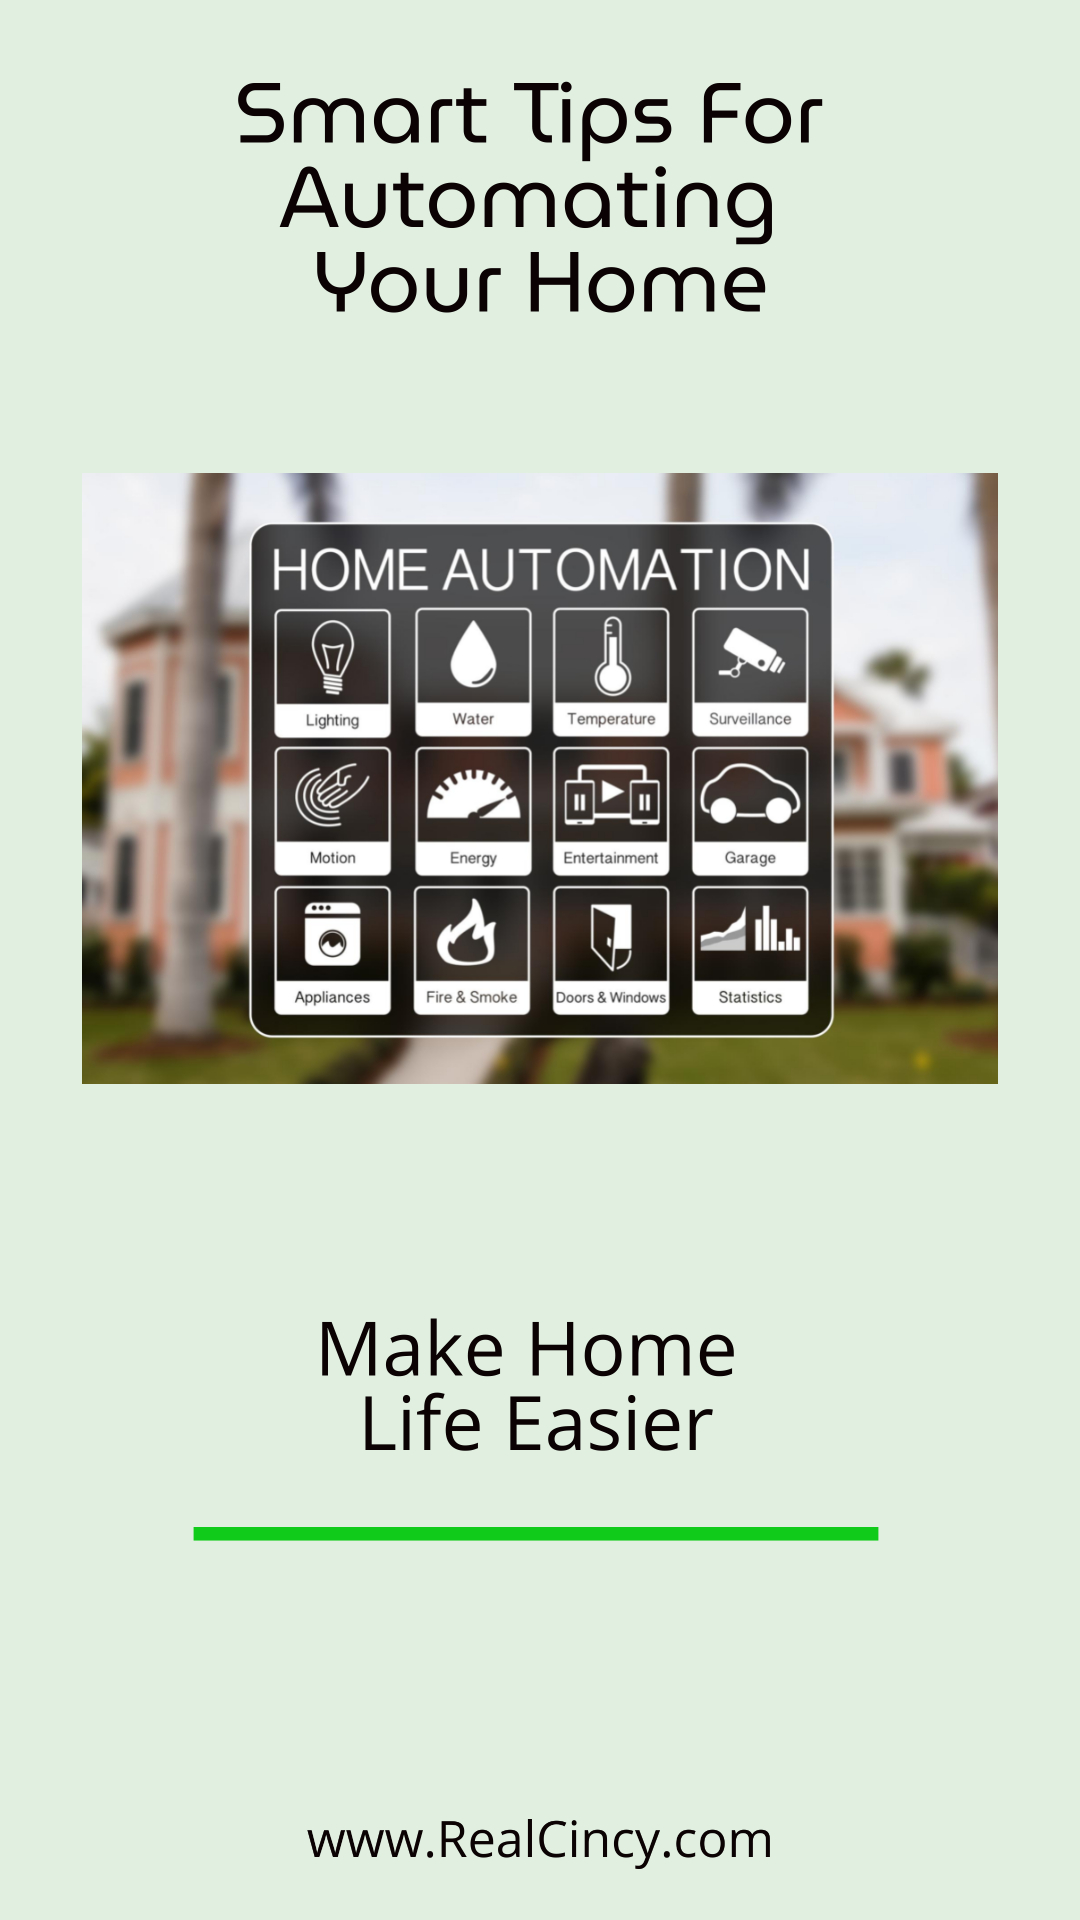 home automation tips for a smarter home